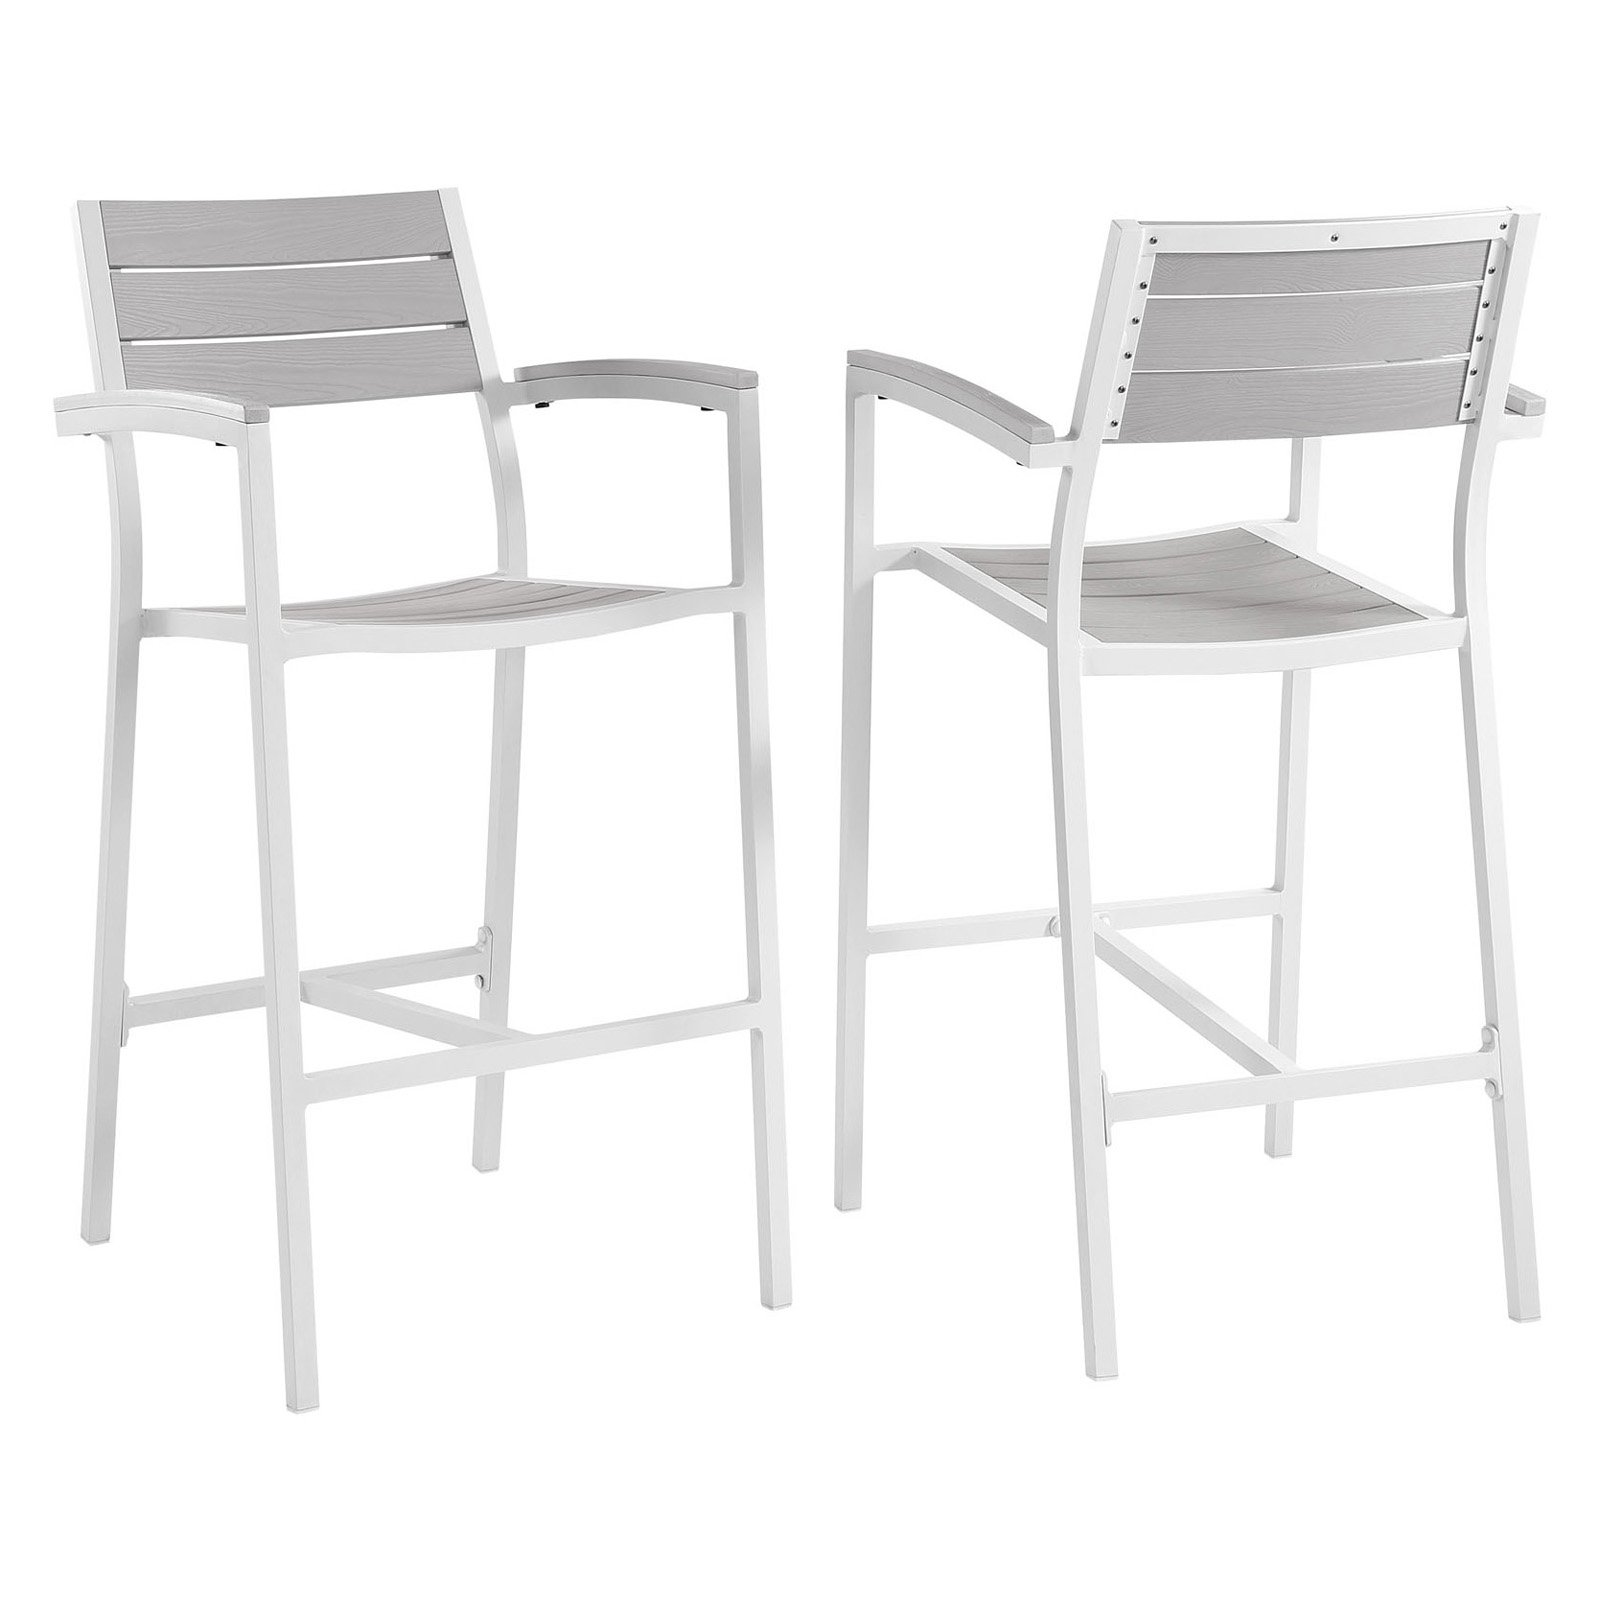 Modway Maine Bar Stool Outdoor Patio, Set of 2, Multiple Colors by Modway